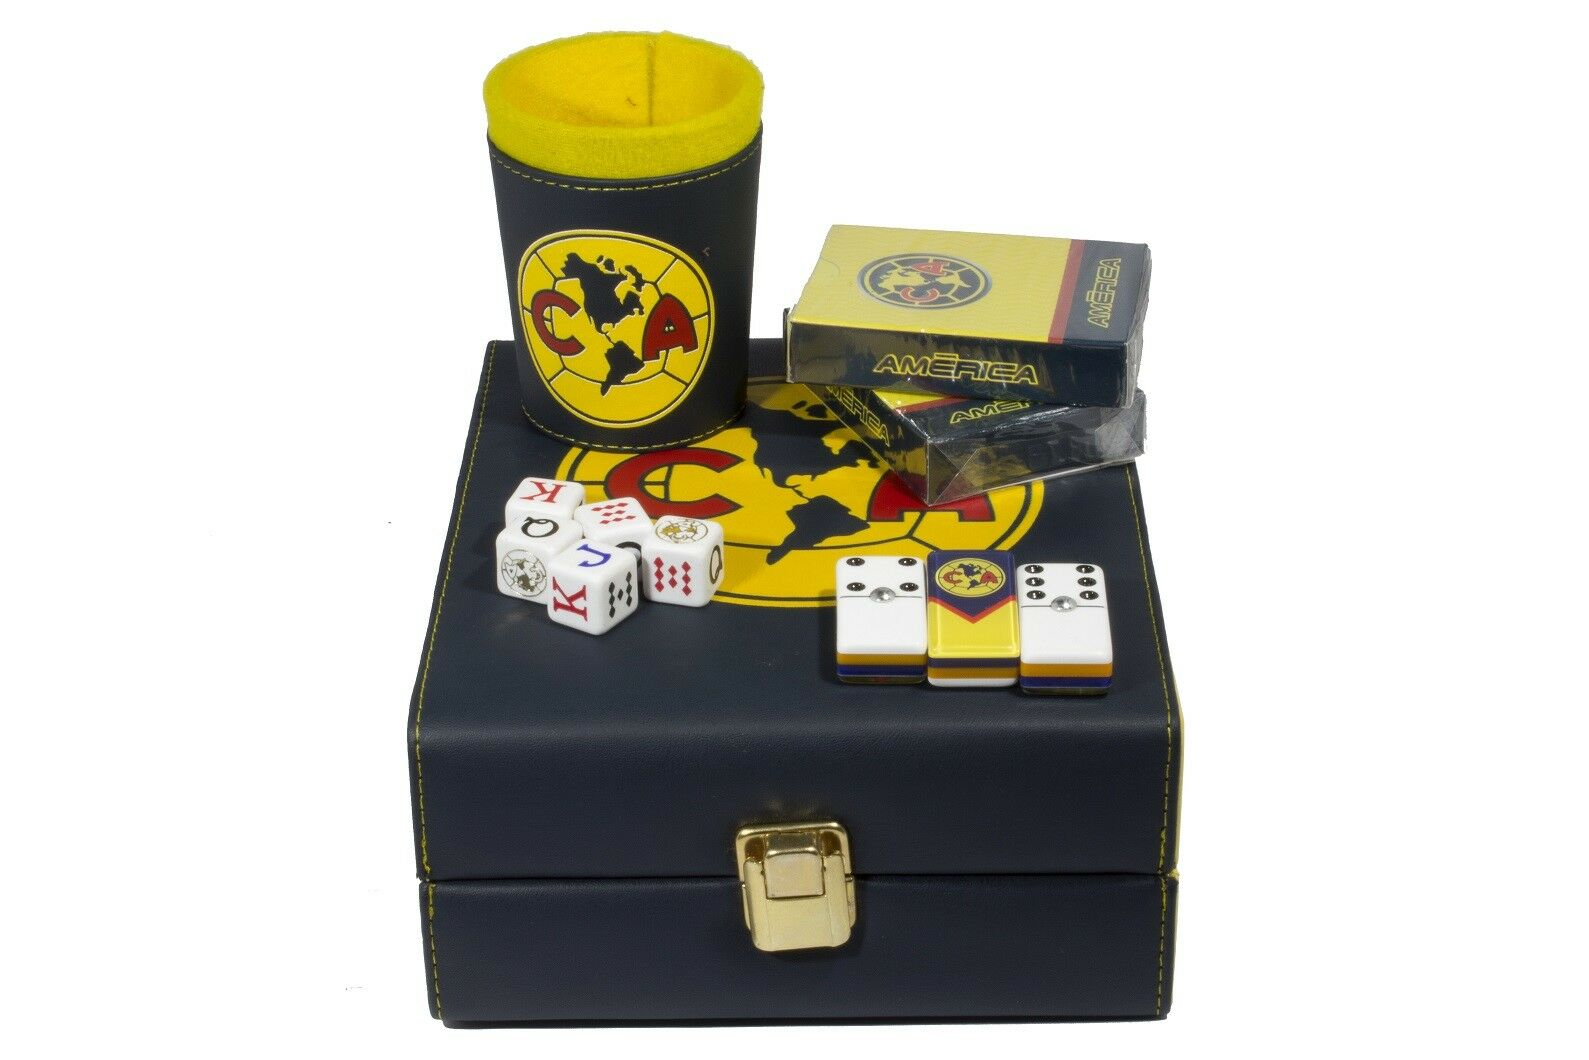 Aguilas Club America Deluxe Set 3 Games: Domino, Dice Cup, 2 Poker Cards